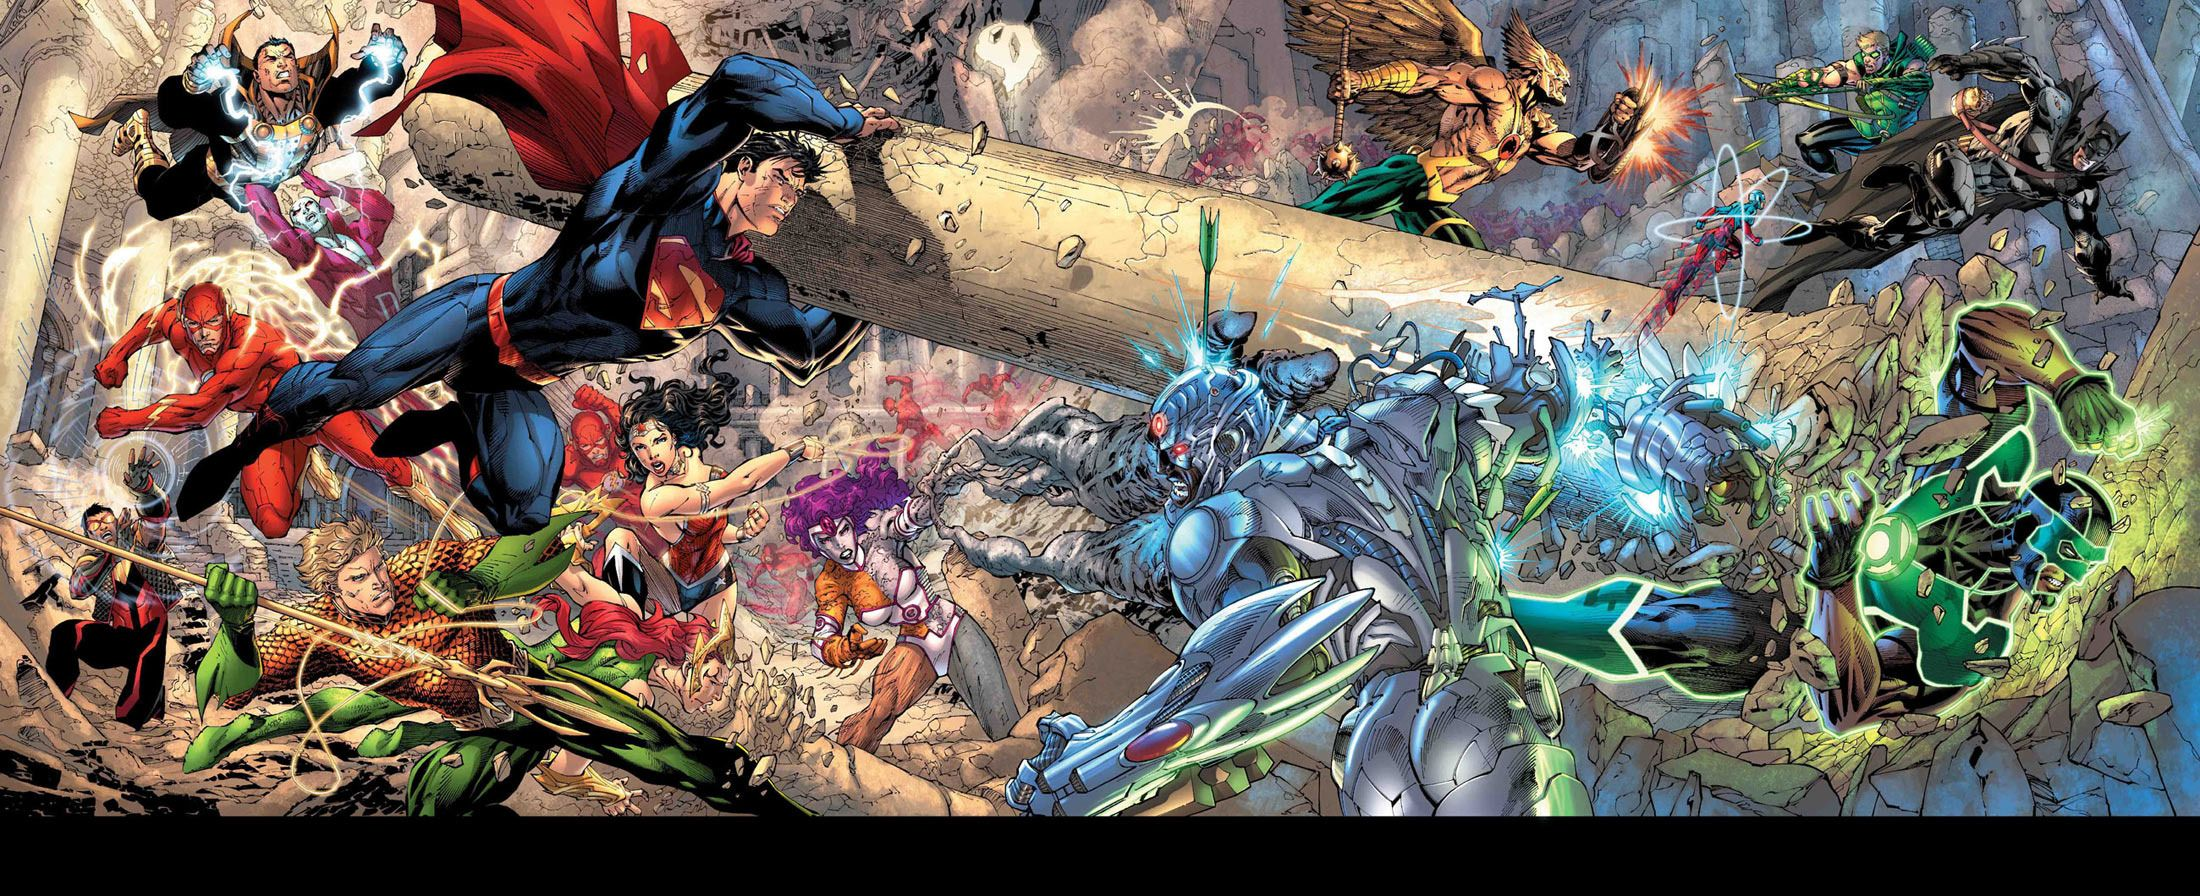 Justice League battle | Comic Book Art | Pinterest | Justice league ...